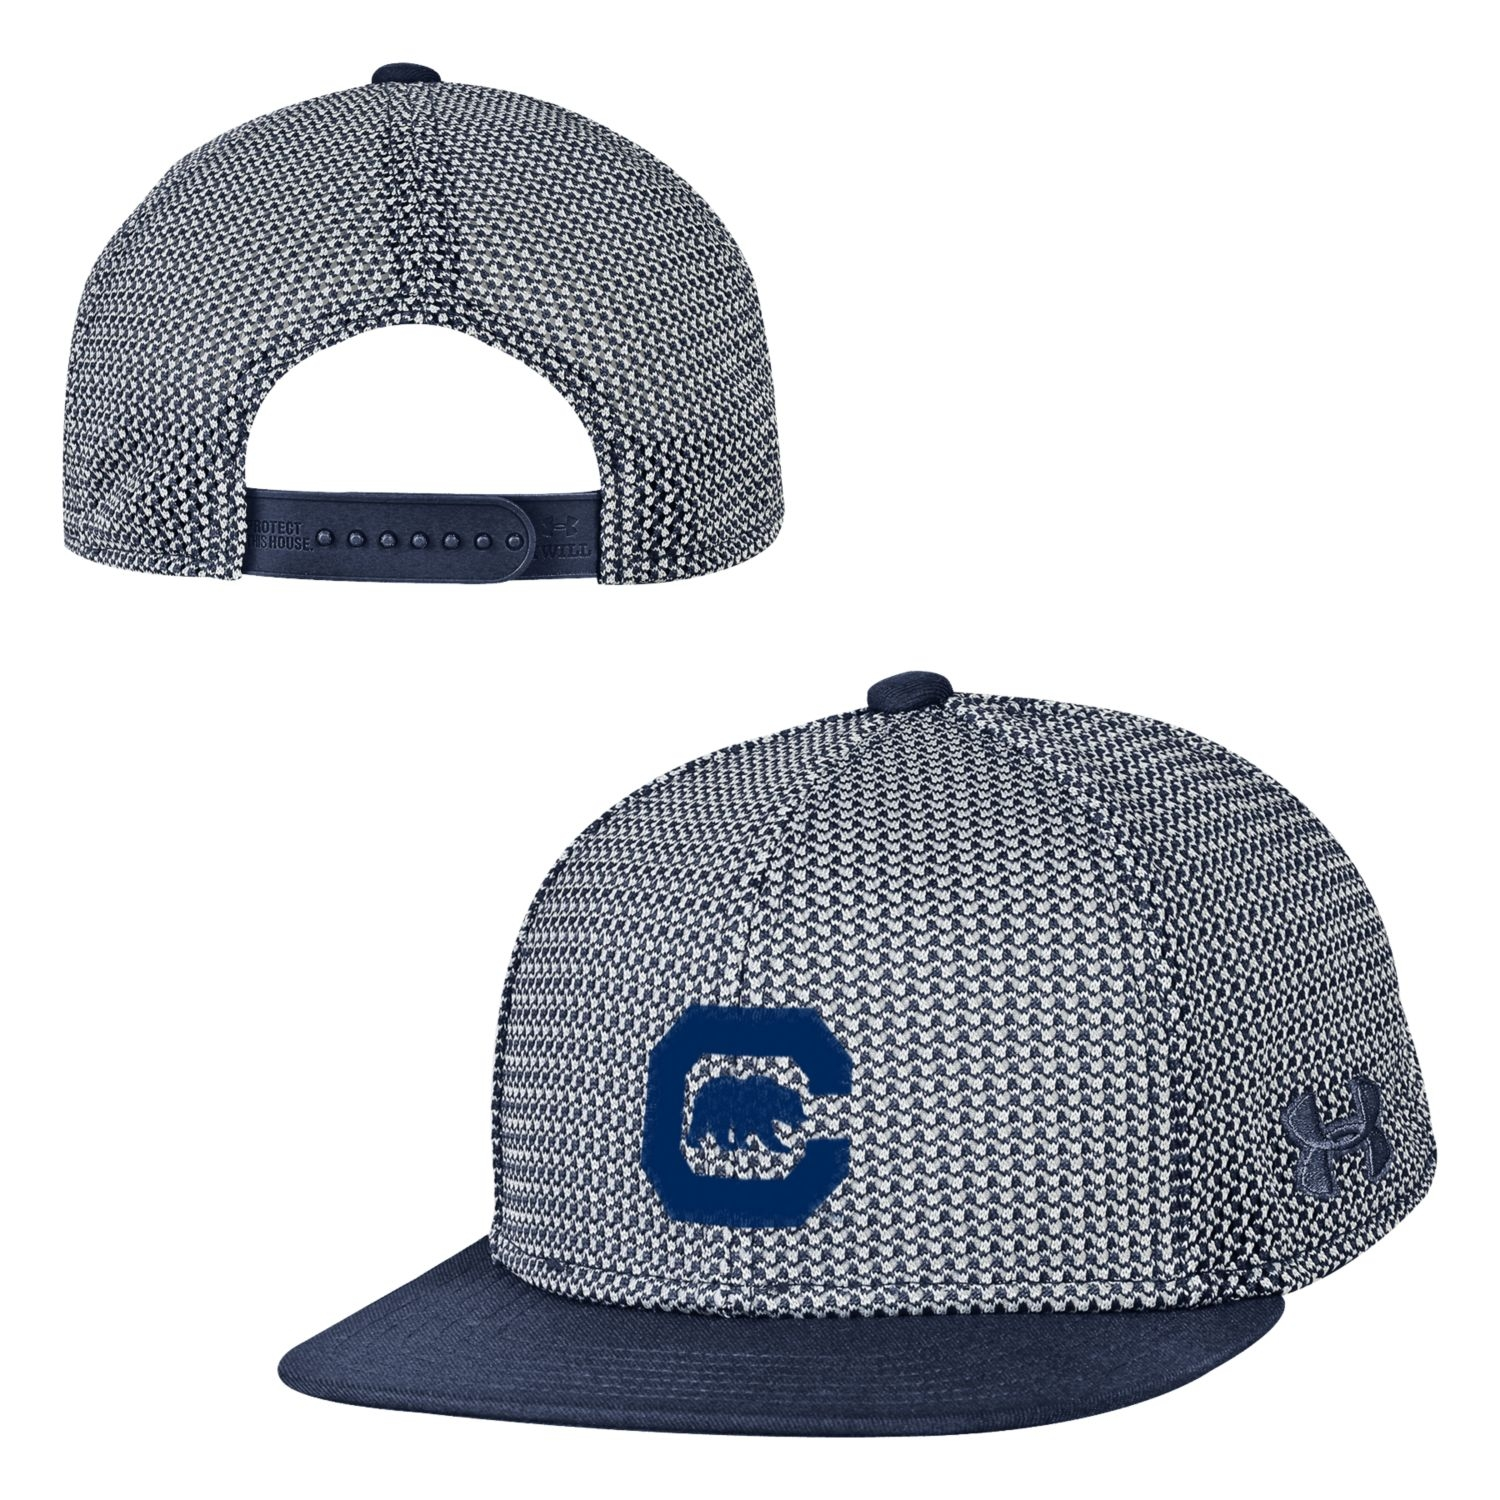 Cal Student Store  University of California Berkeley Under Armour Youth  Mesh Snapback Cap 780b8683a58